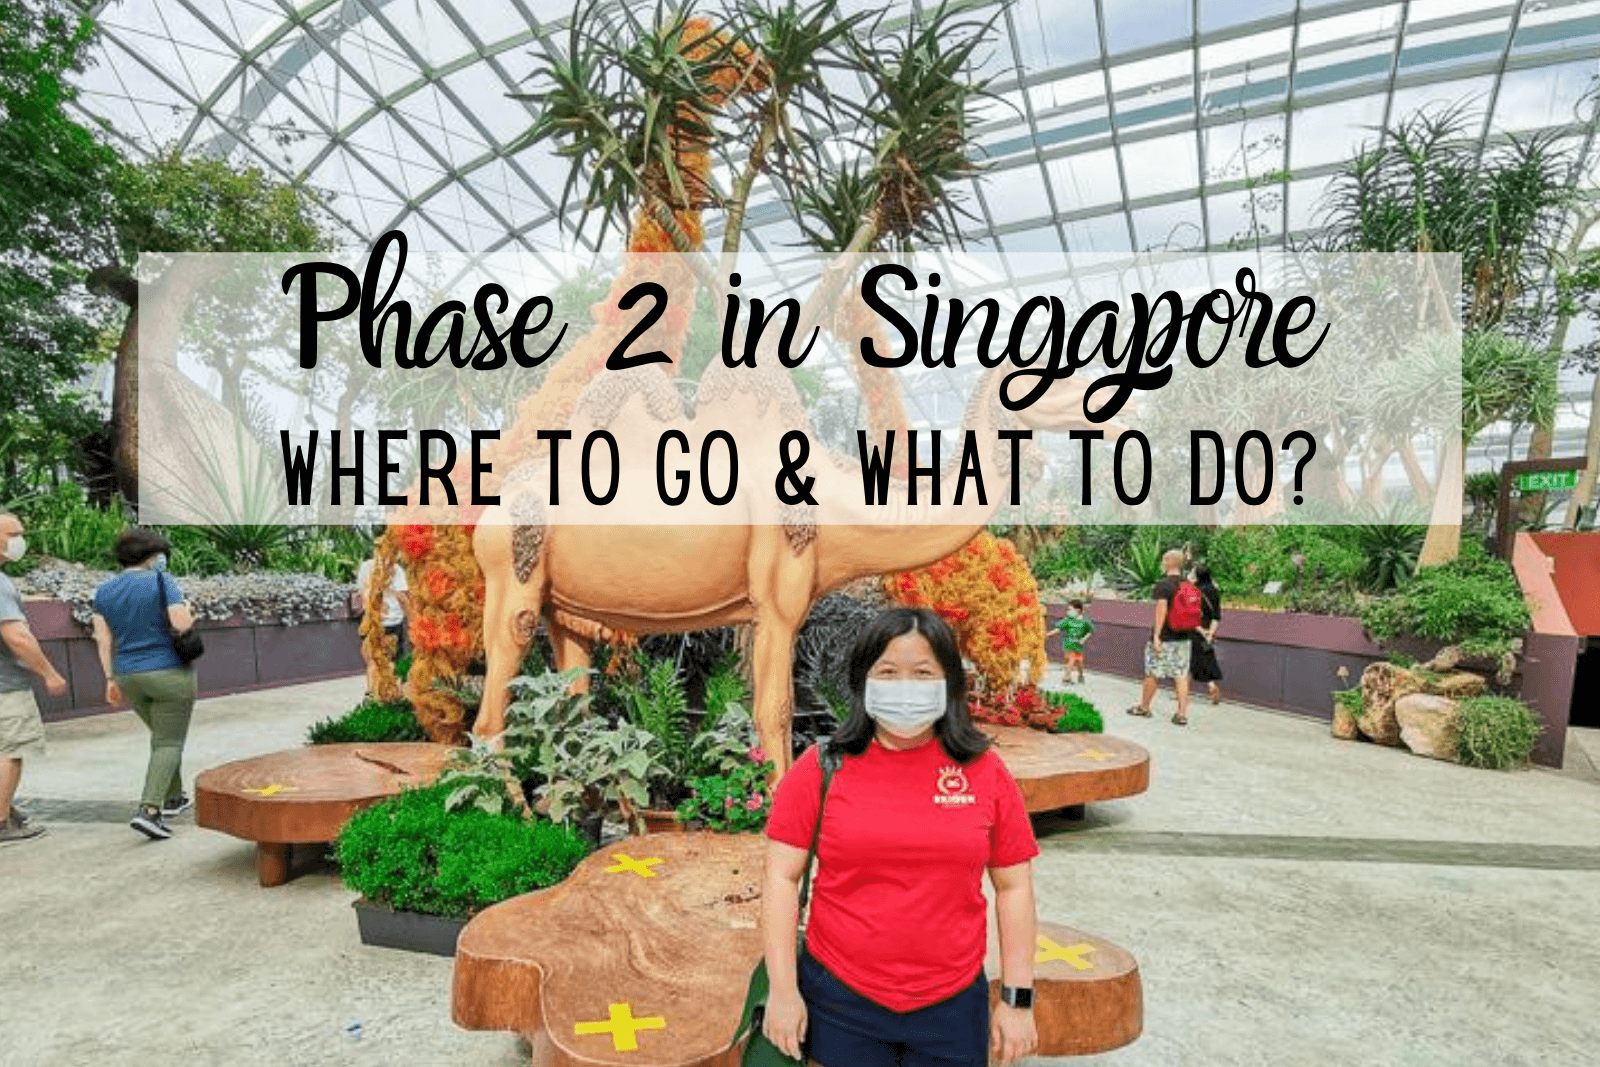 Phase 2 in Singapore: Where to Go and What to Do